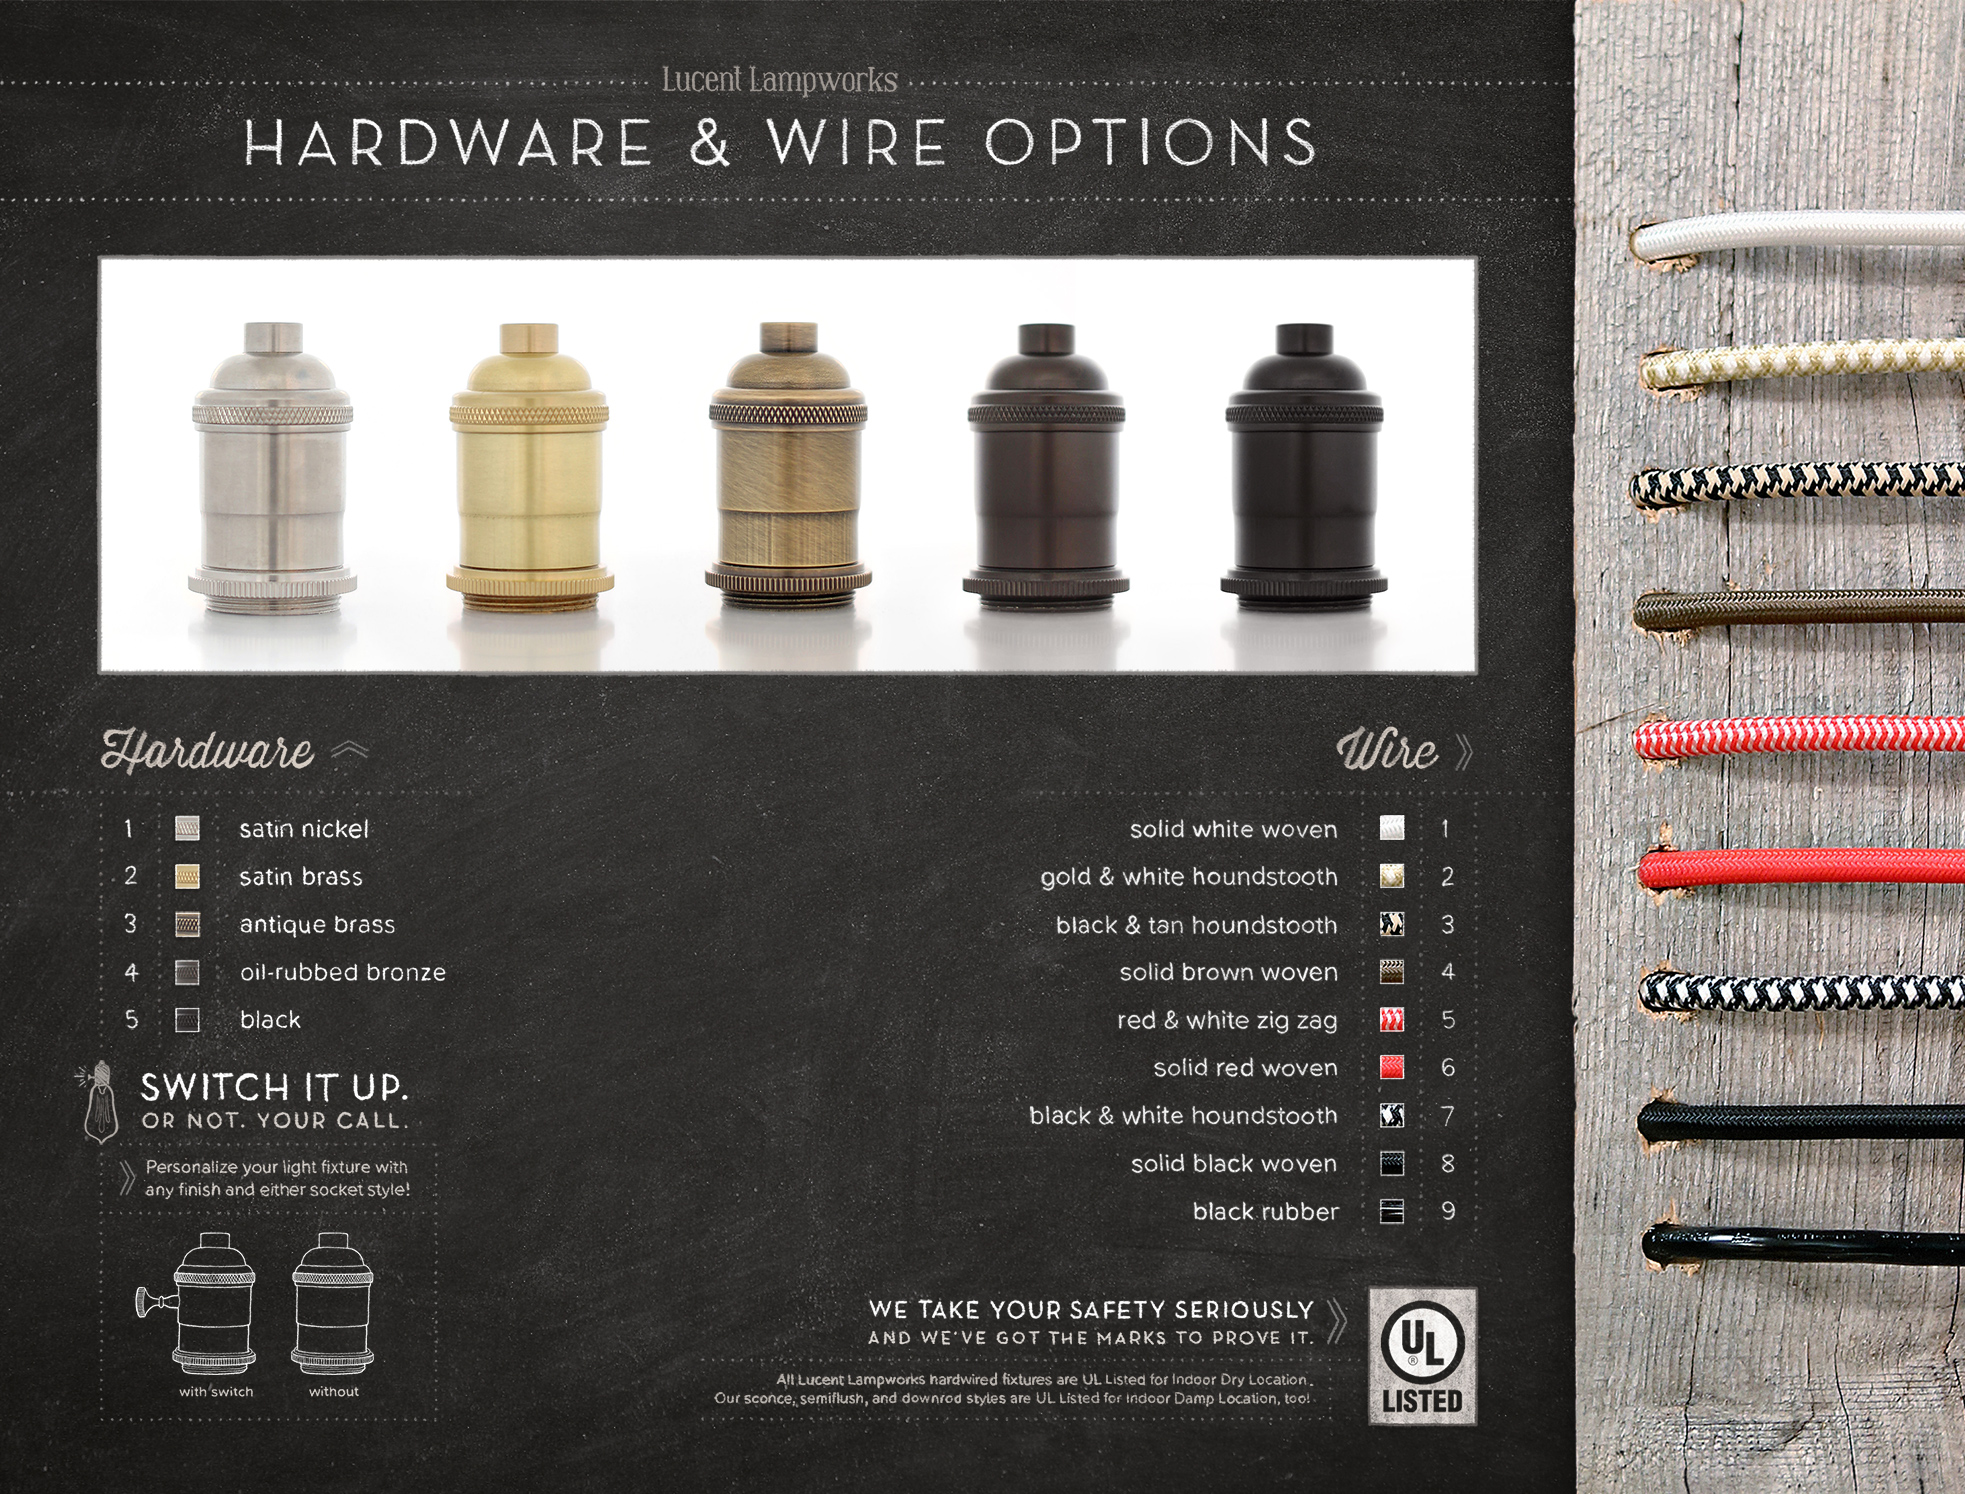 Lucent Lampworks Hardware & Wire Selection with Switches.jpg